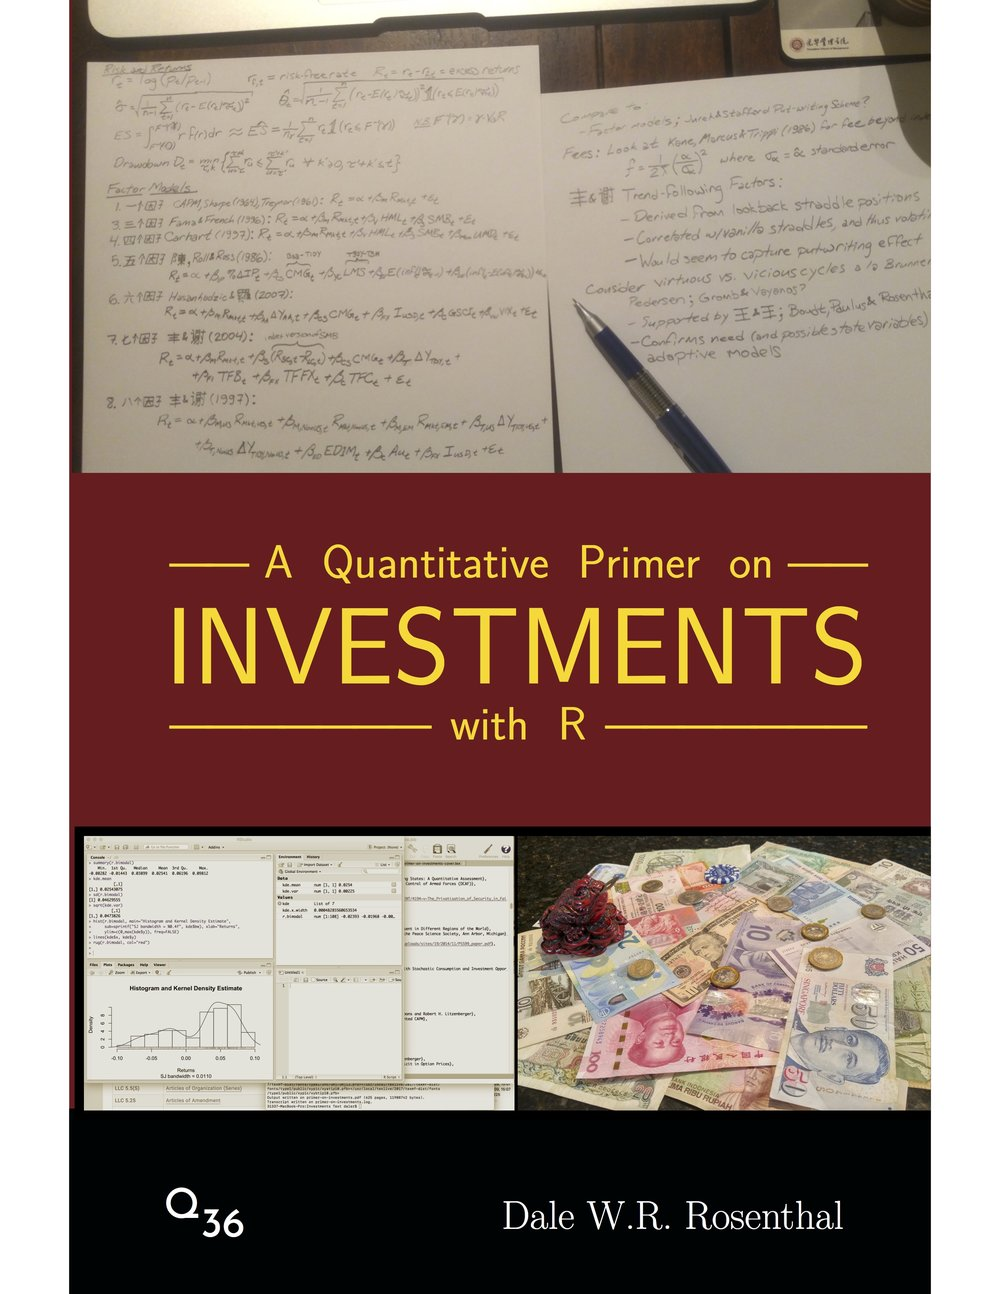 primer-on-investments-cover-image.jpg